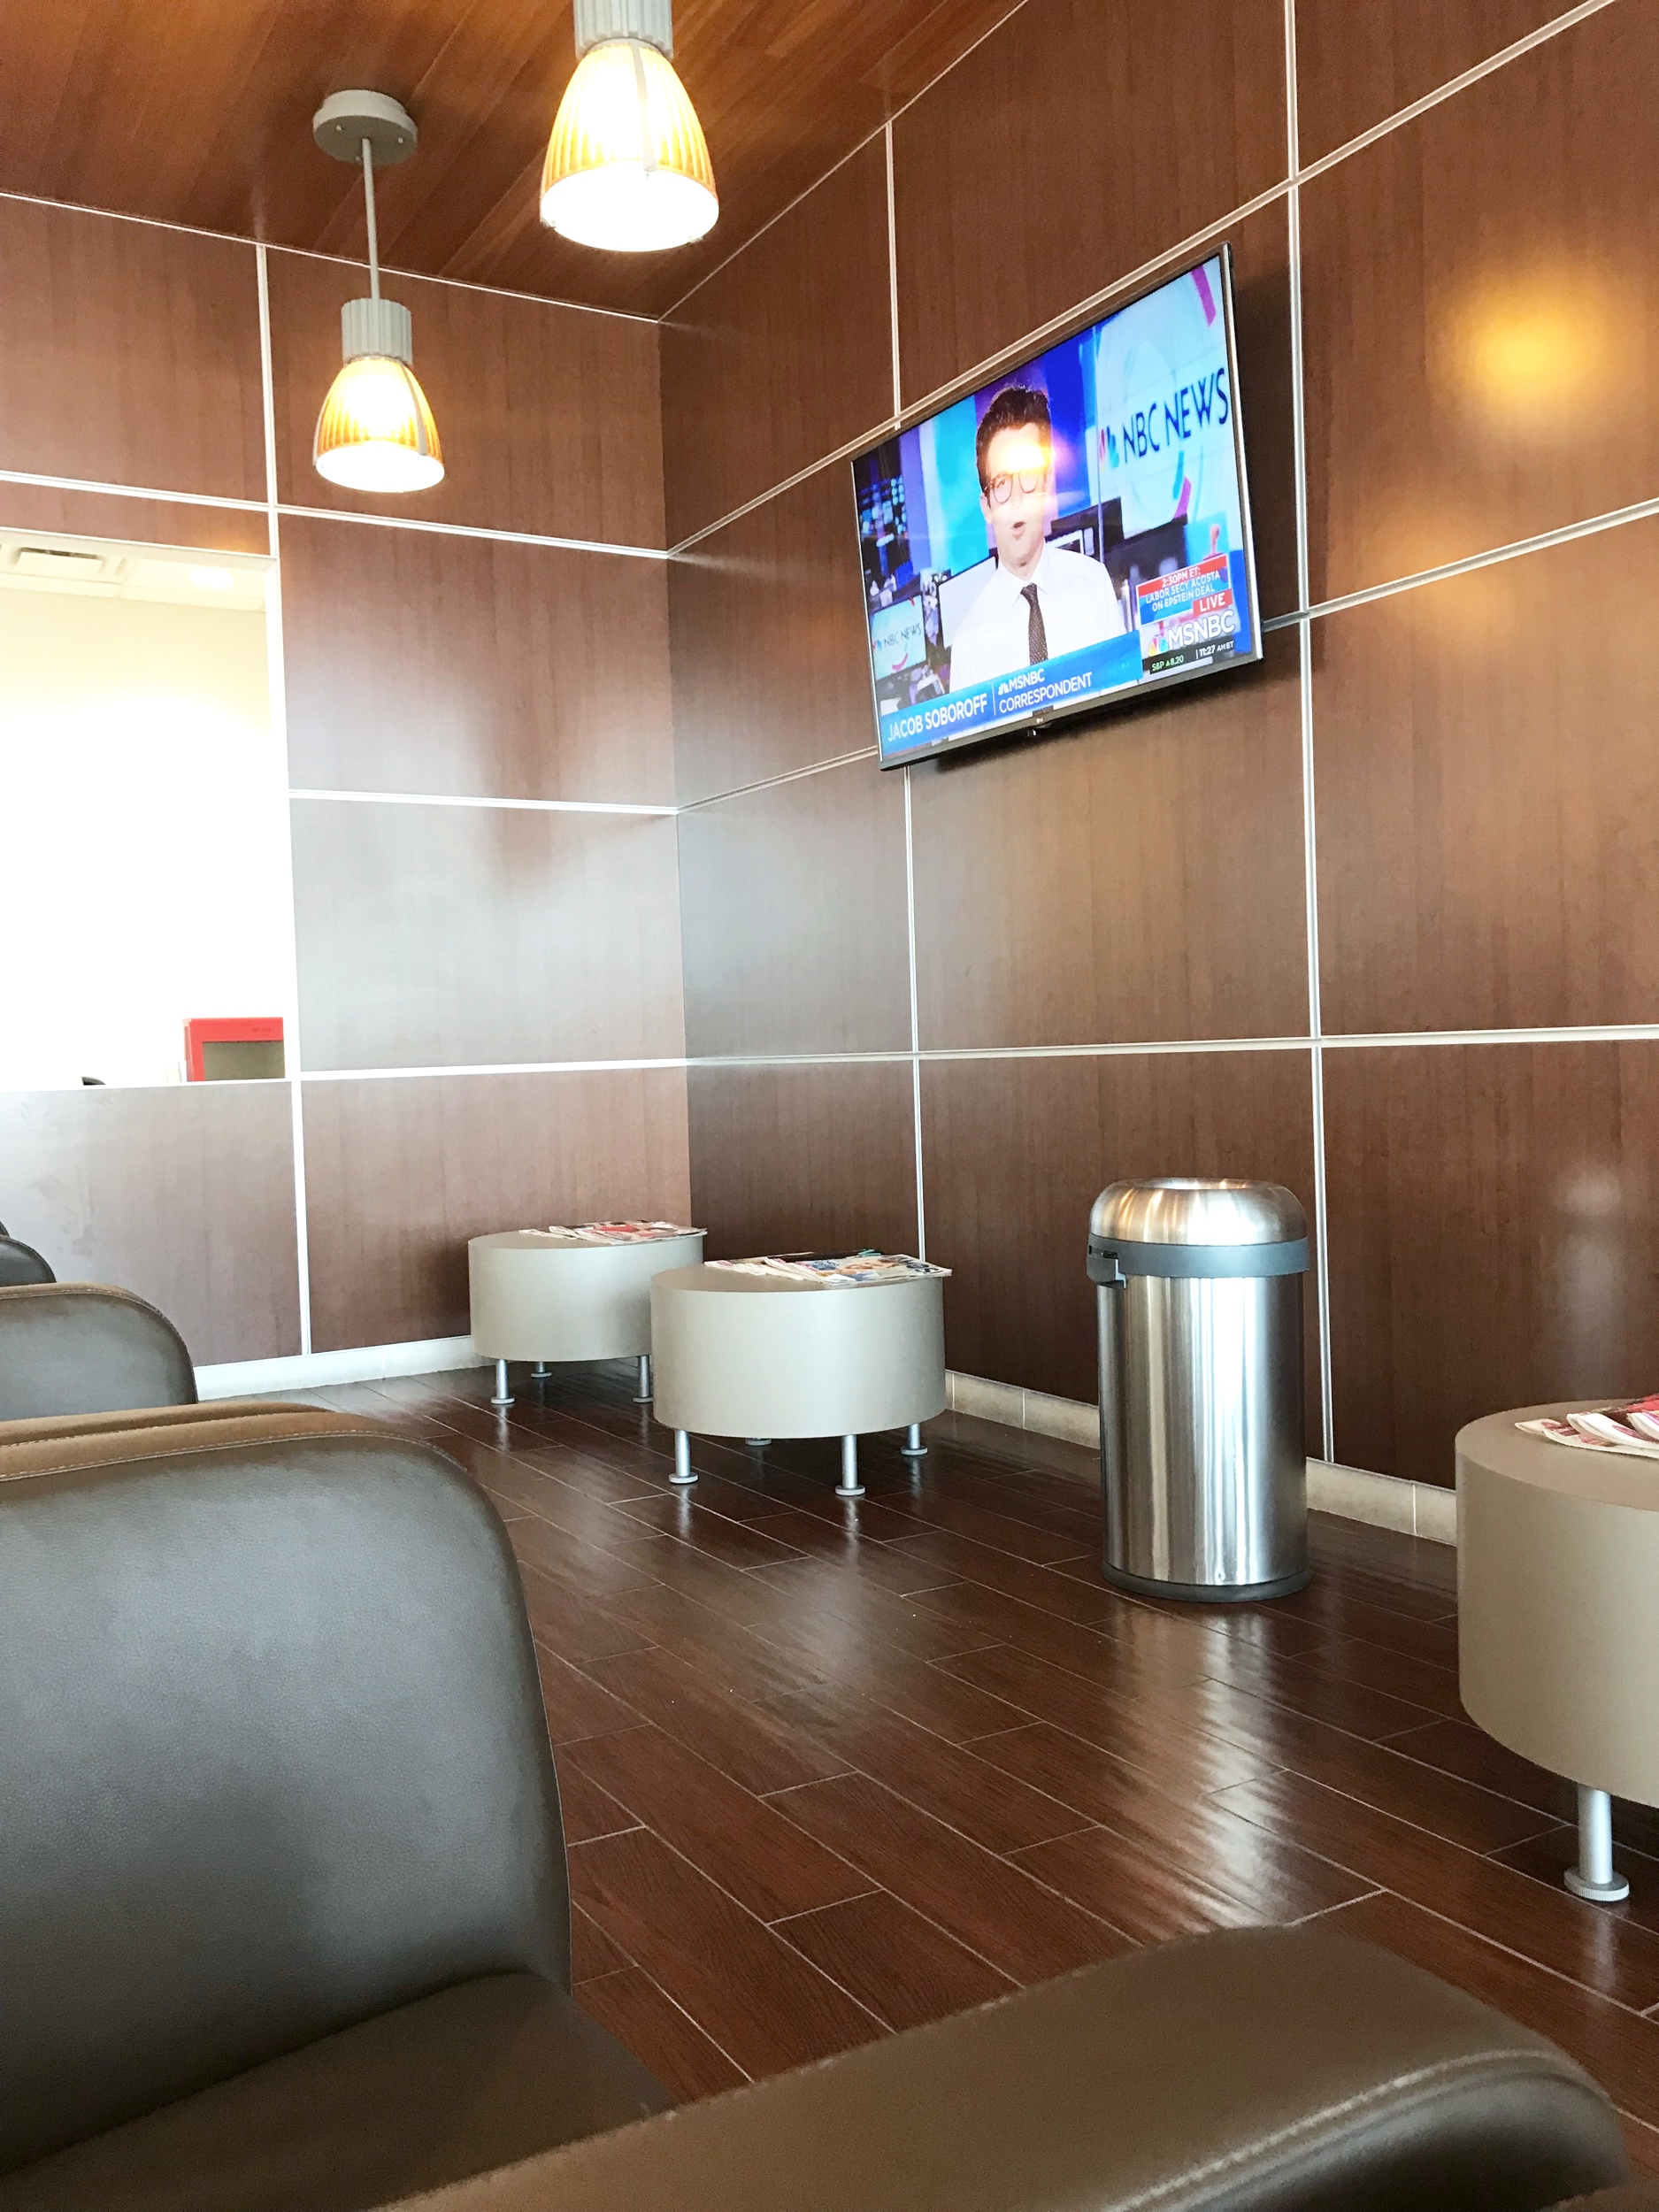 The waiting area of the local dealership's service department.